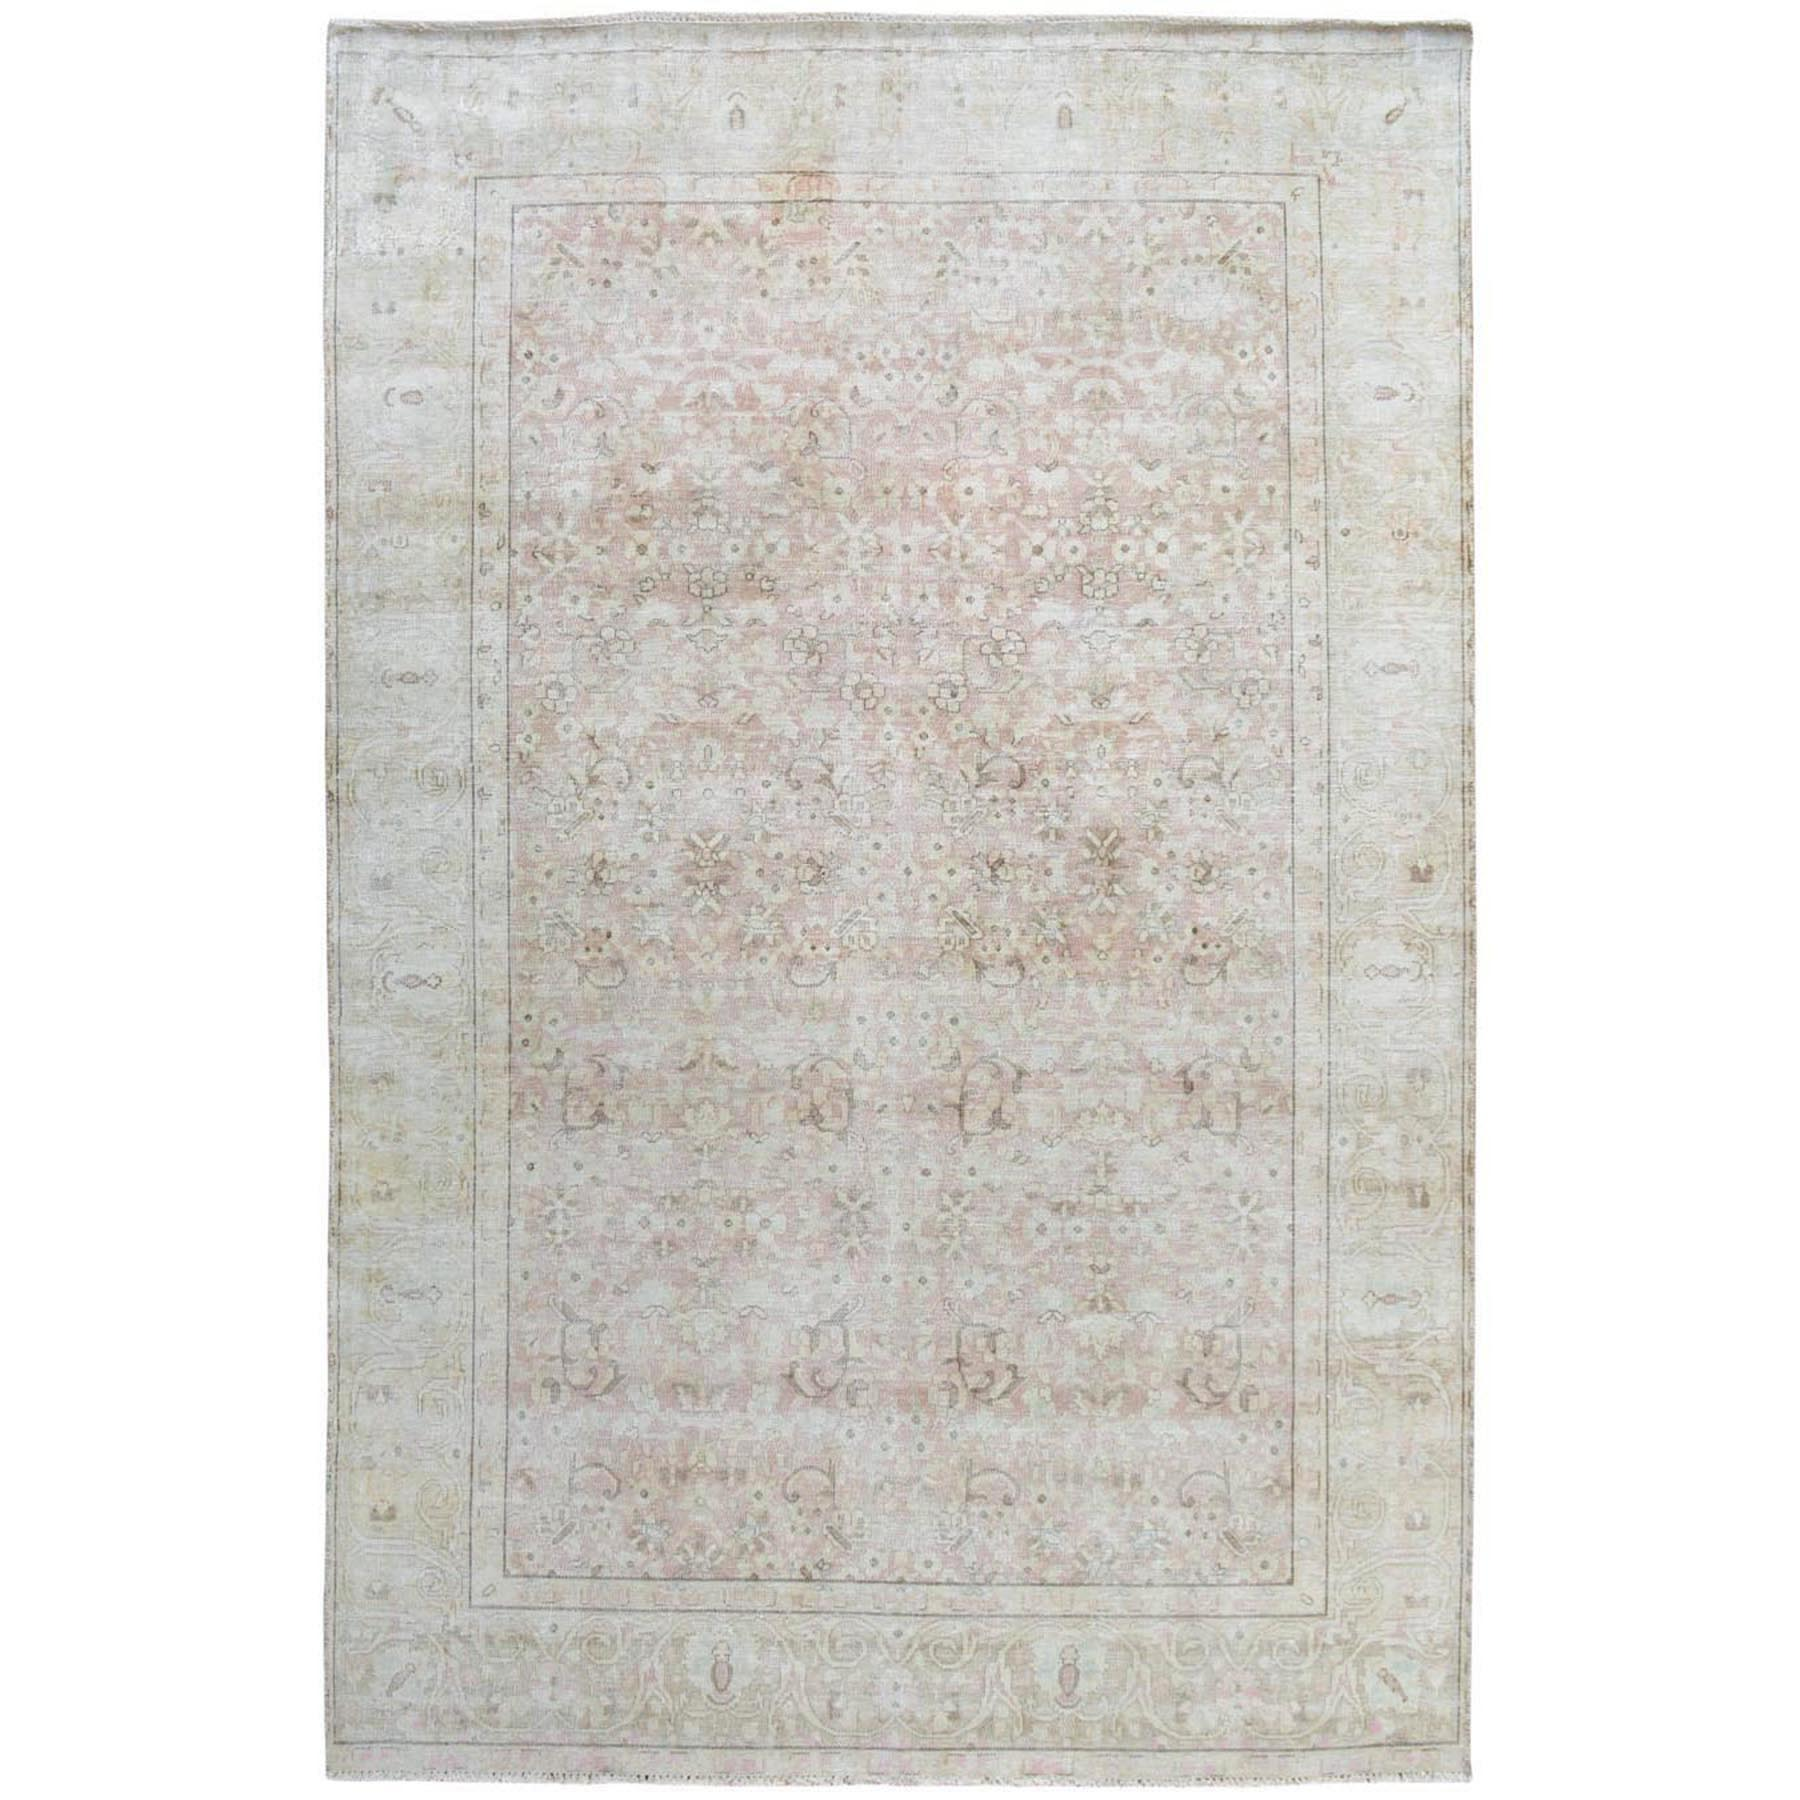 "6'x9'1"" White Vintage and Worn Down Persian Kerman Hand Woven Pure Wool Oriental Rug"